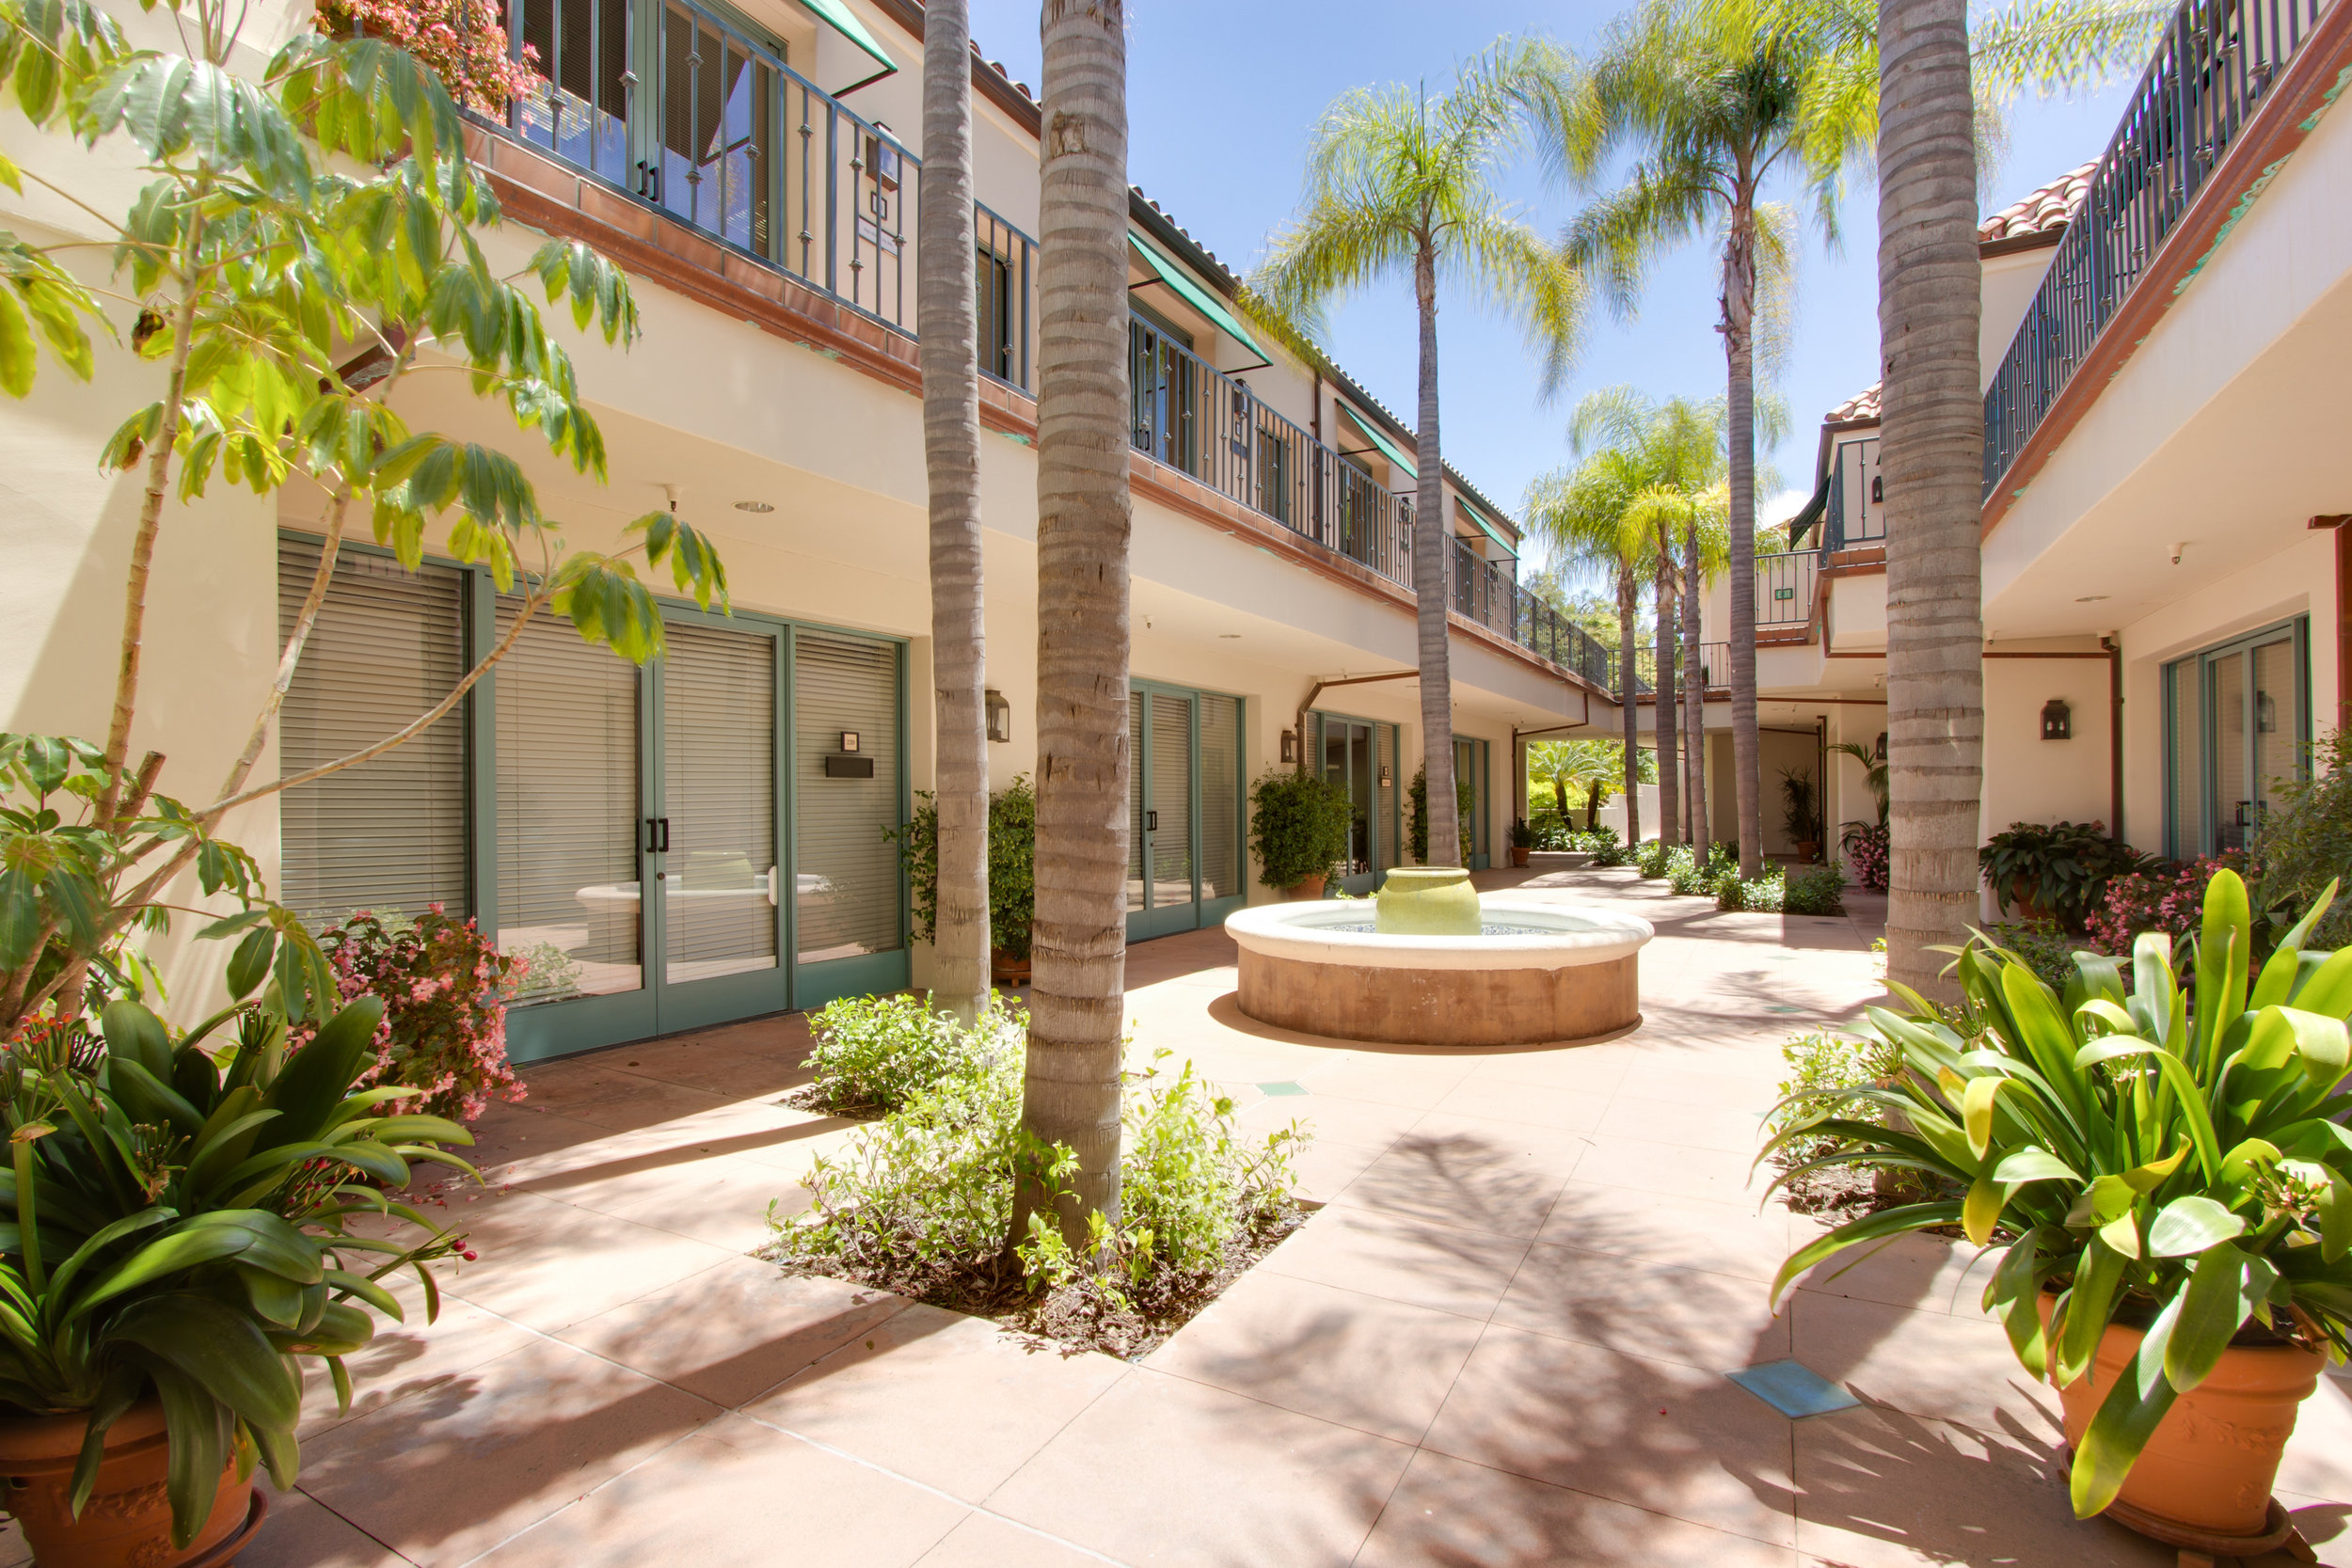 Copy of 550 Silver Spur COURTYARD.jpg